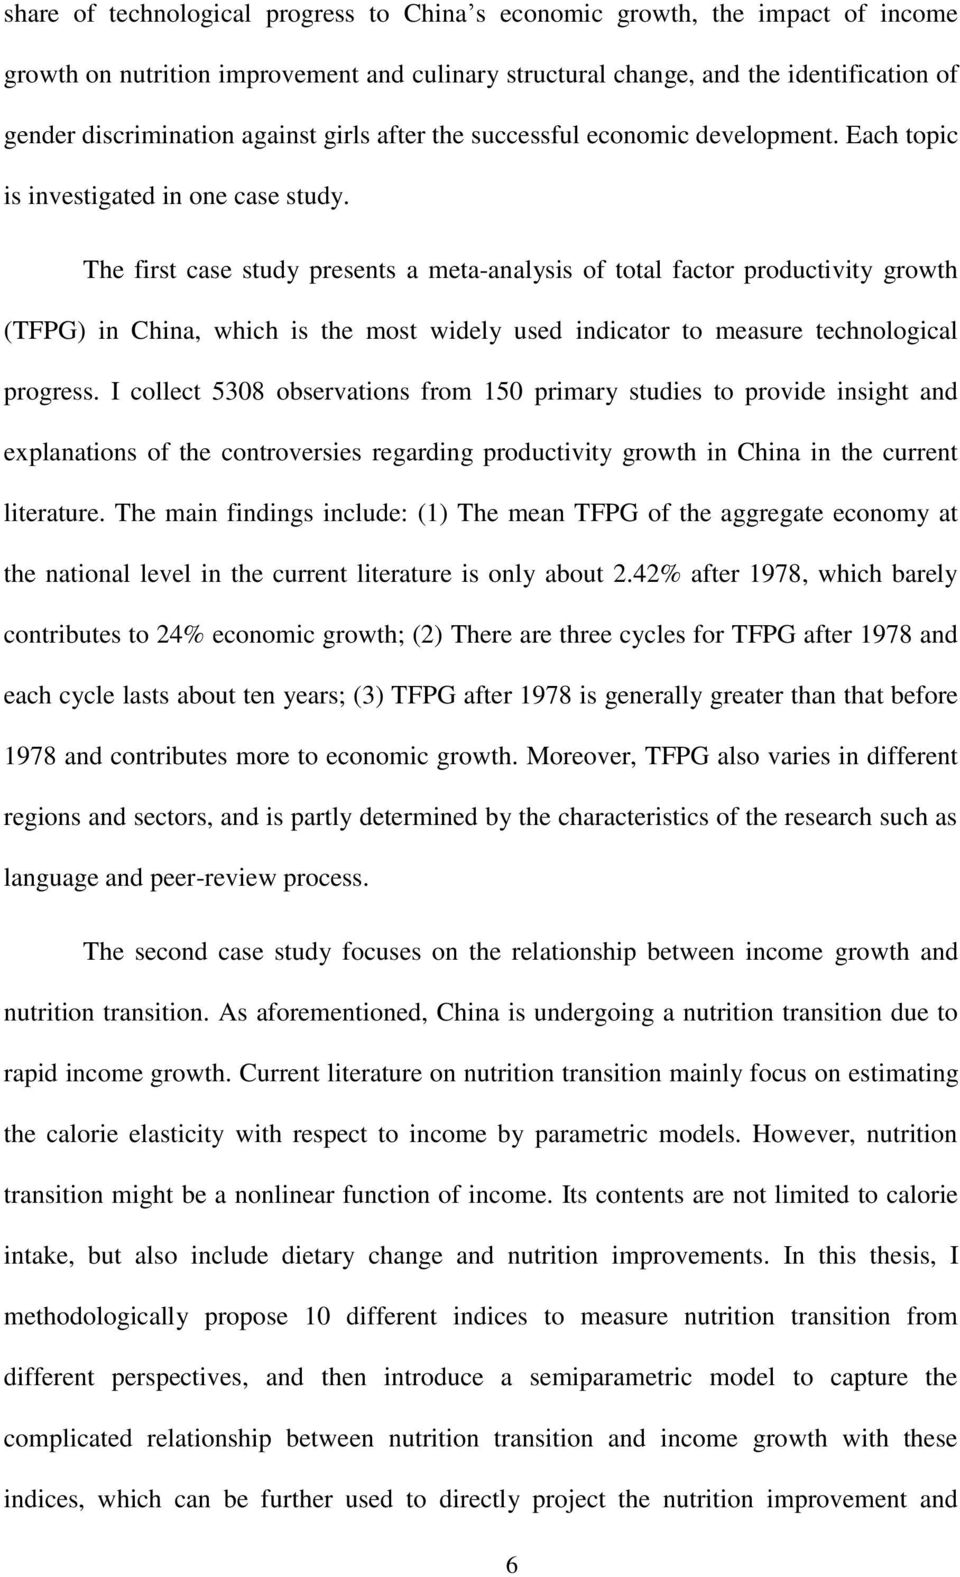 The first case study presents a meta-analysis of total factor productivity growth (TFPG) in China, which is the most widely used indicator to measure technological progress.